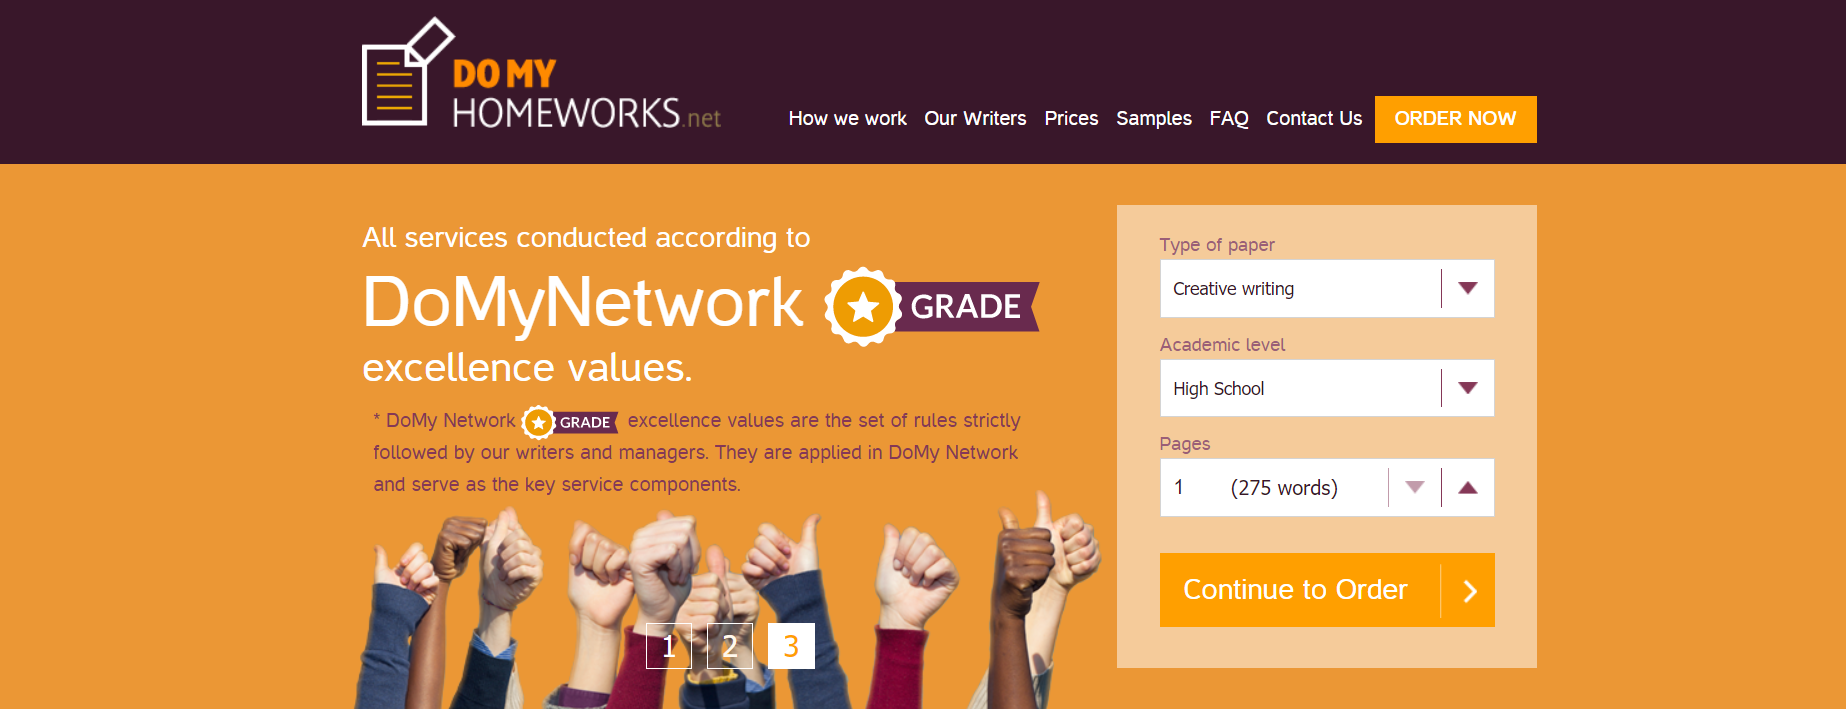 DoMyHomeworks Review: Best Homework writing service